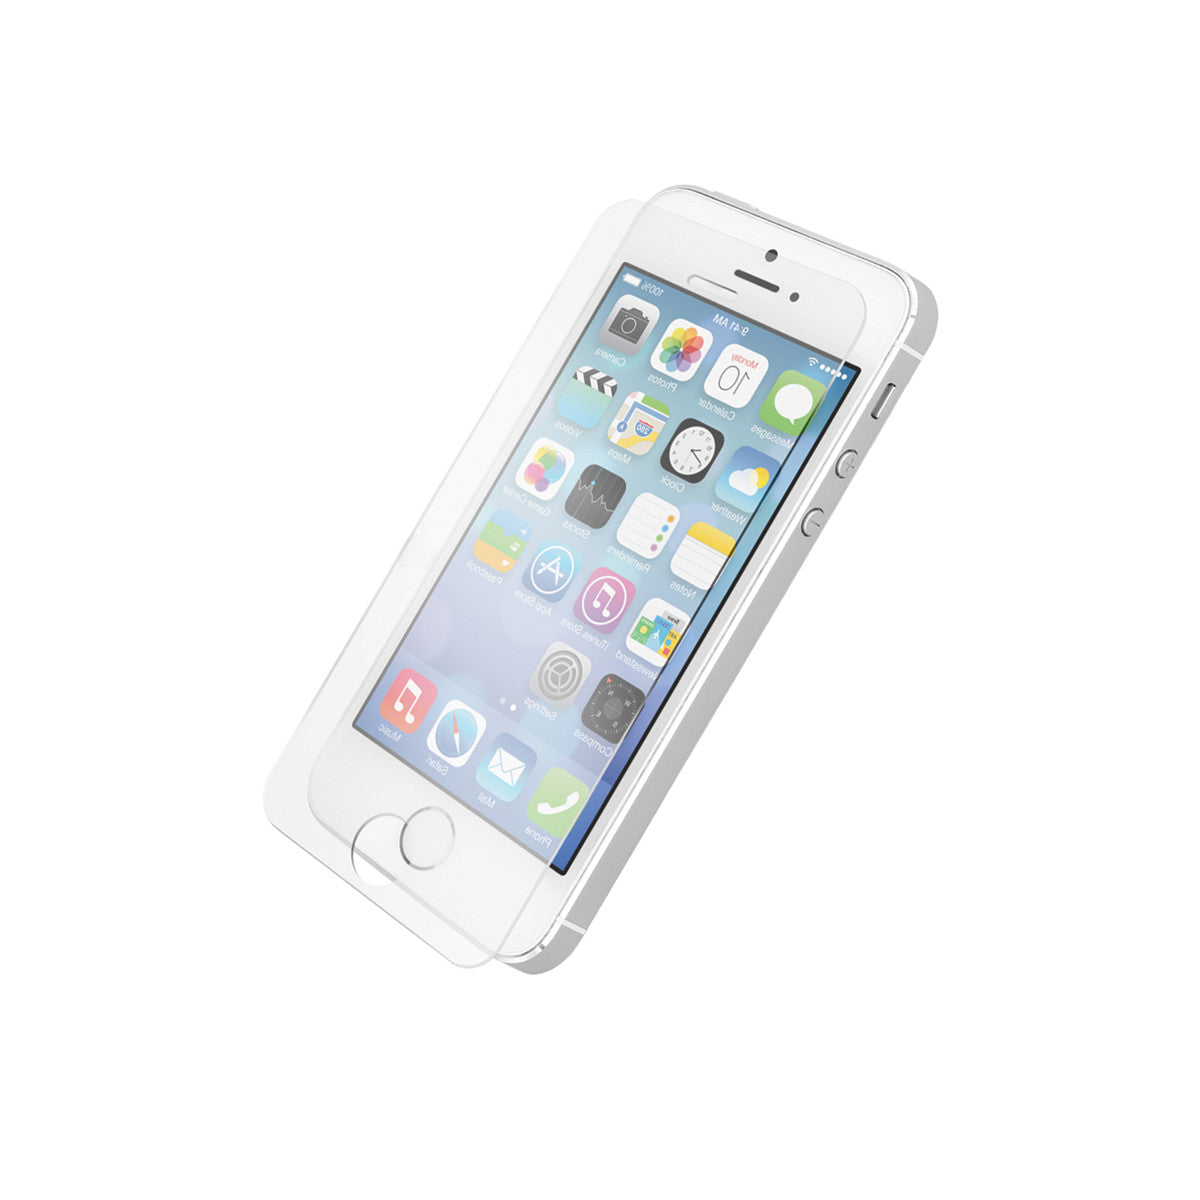 Tempered Glass Screen Protector For Apple iPhone 4/5/6/7 & Plus